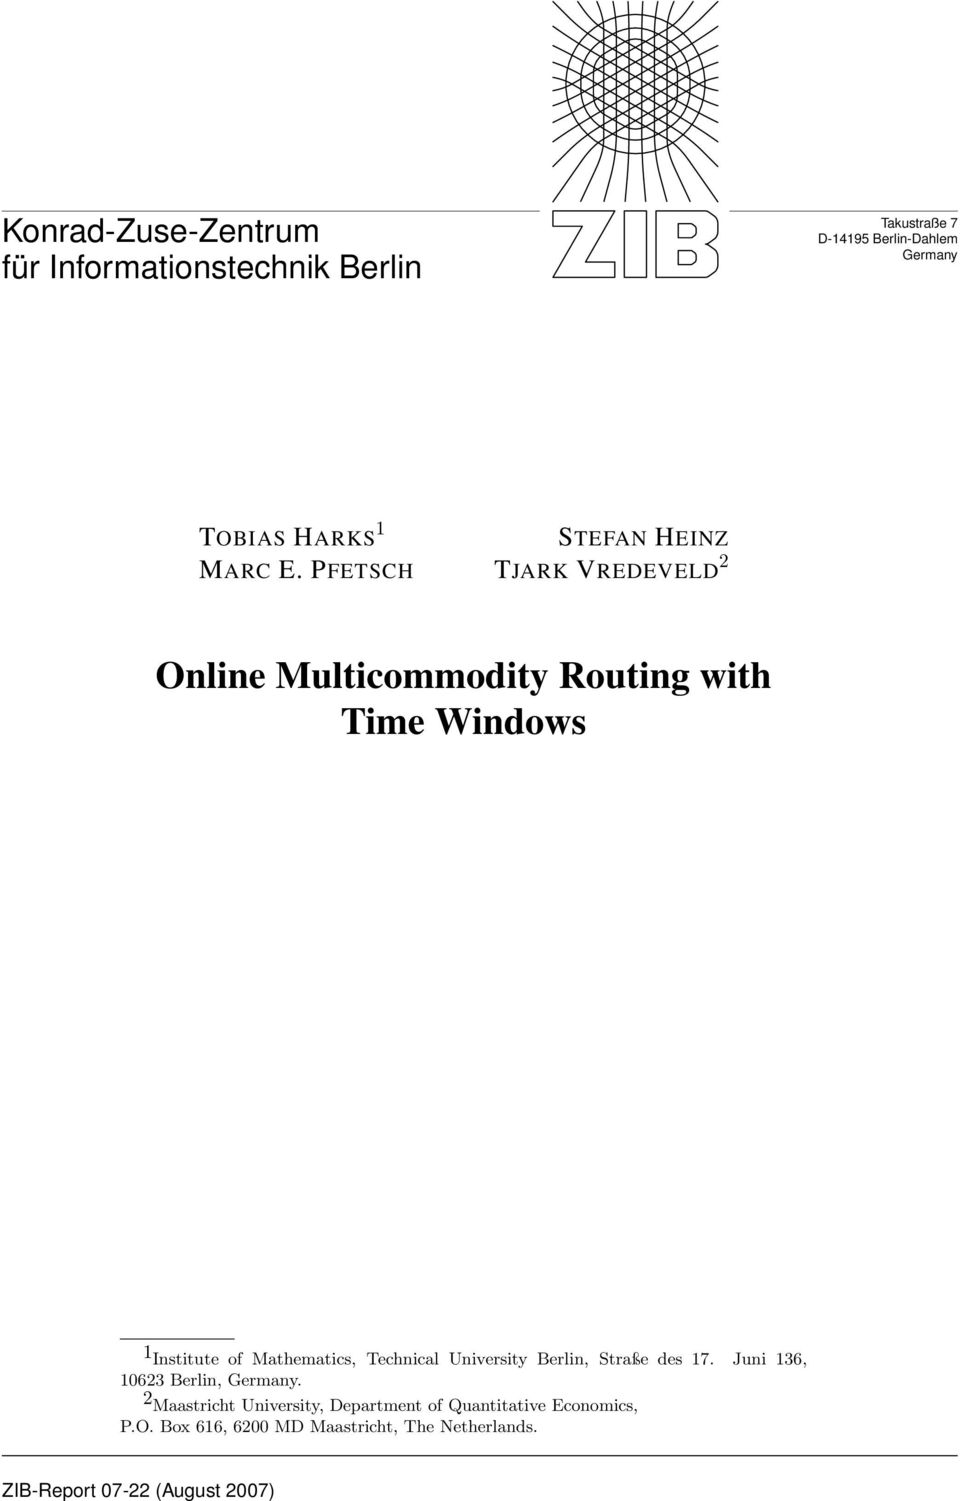 PFETSCH TJARK VREDEVELD 2 Online Multicommodity Routing with Time Windows 1 Institute of Mthemtics,